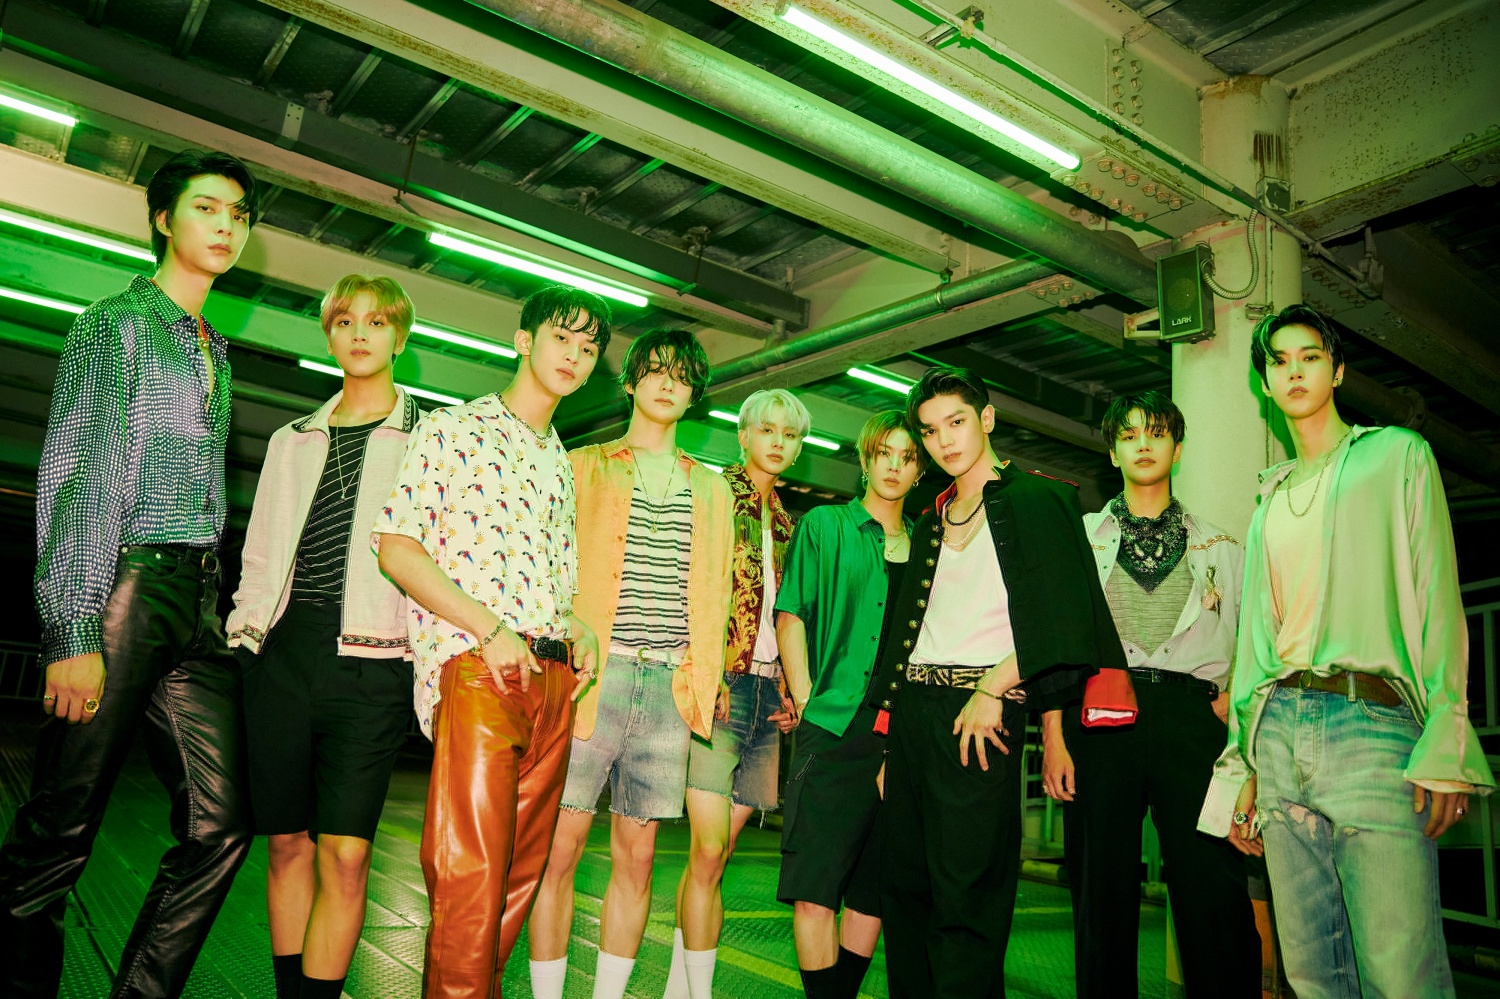 NCT 127's first stage of new song 'Sticker' at 'The Late Late Show with James Corden' in the US